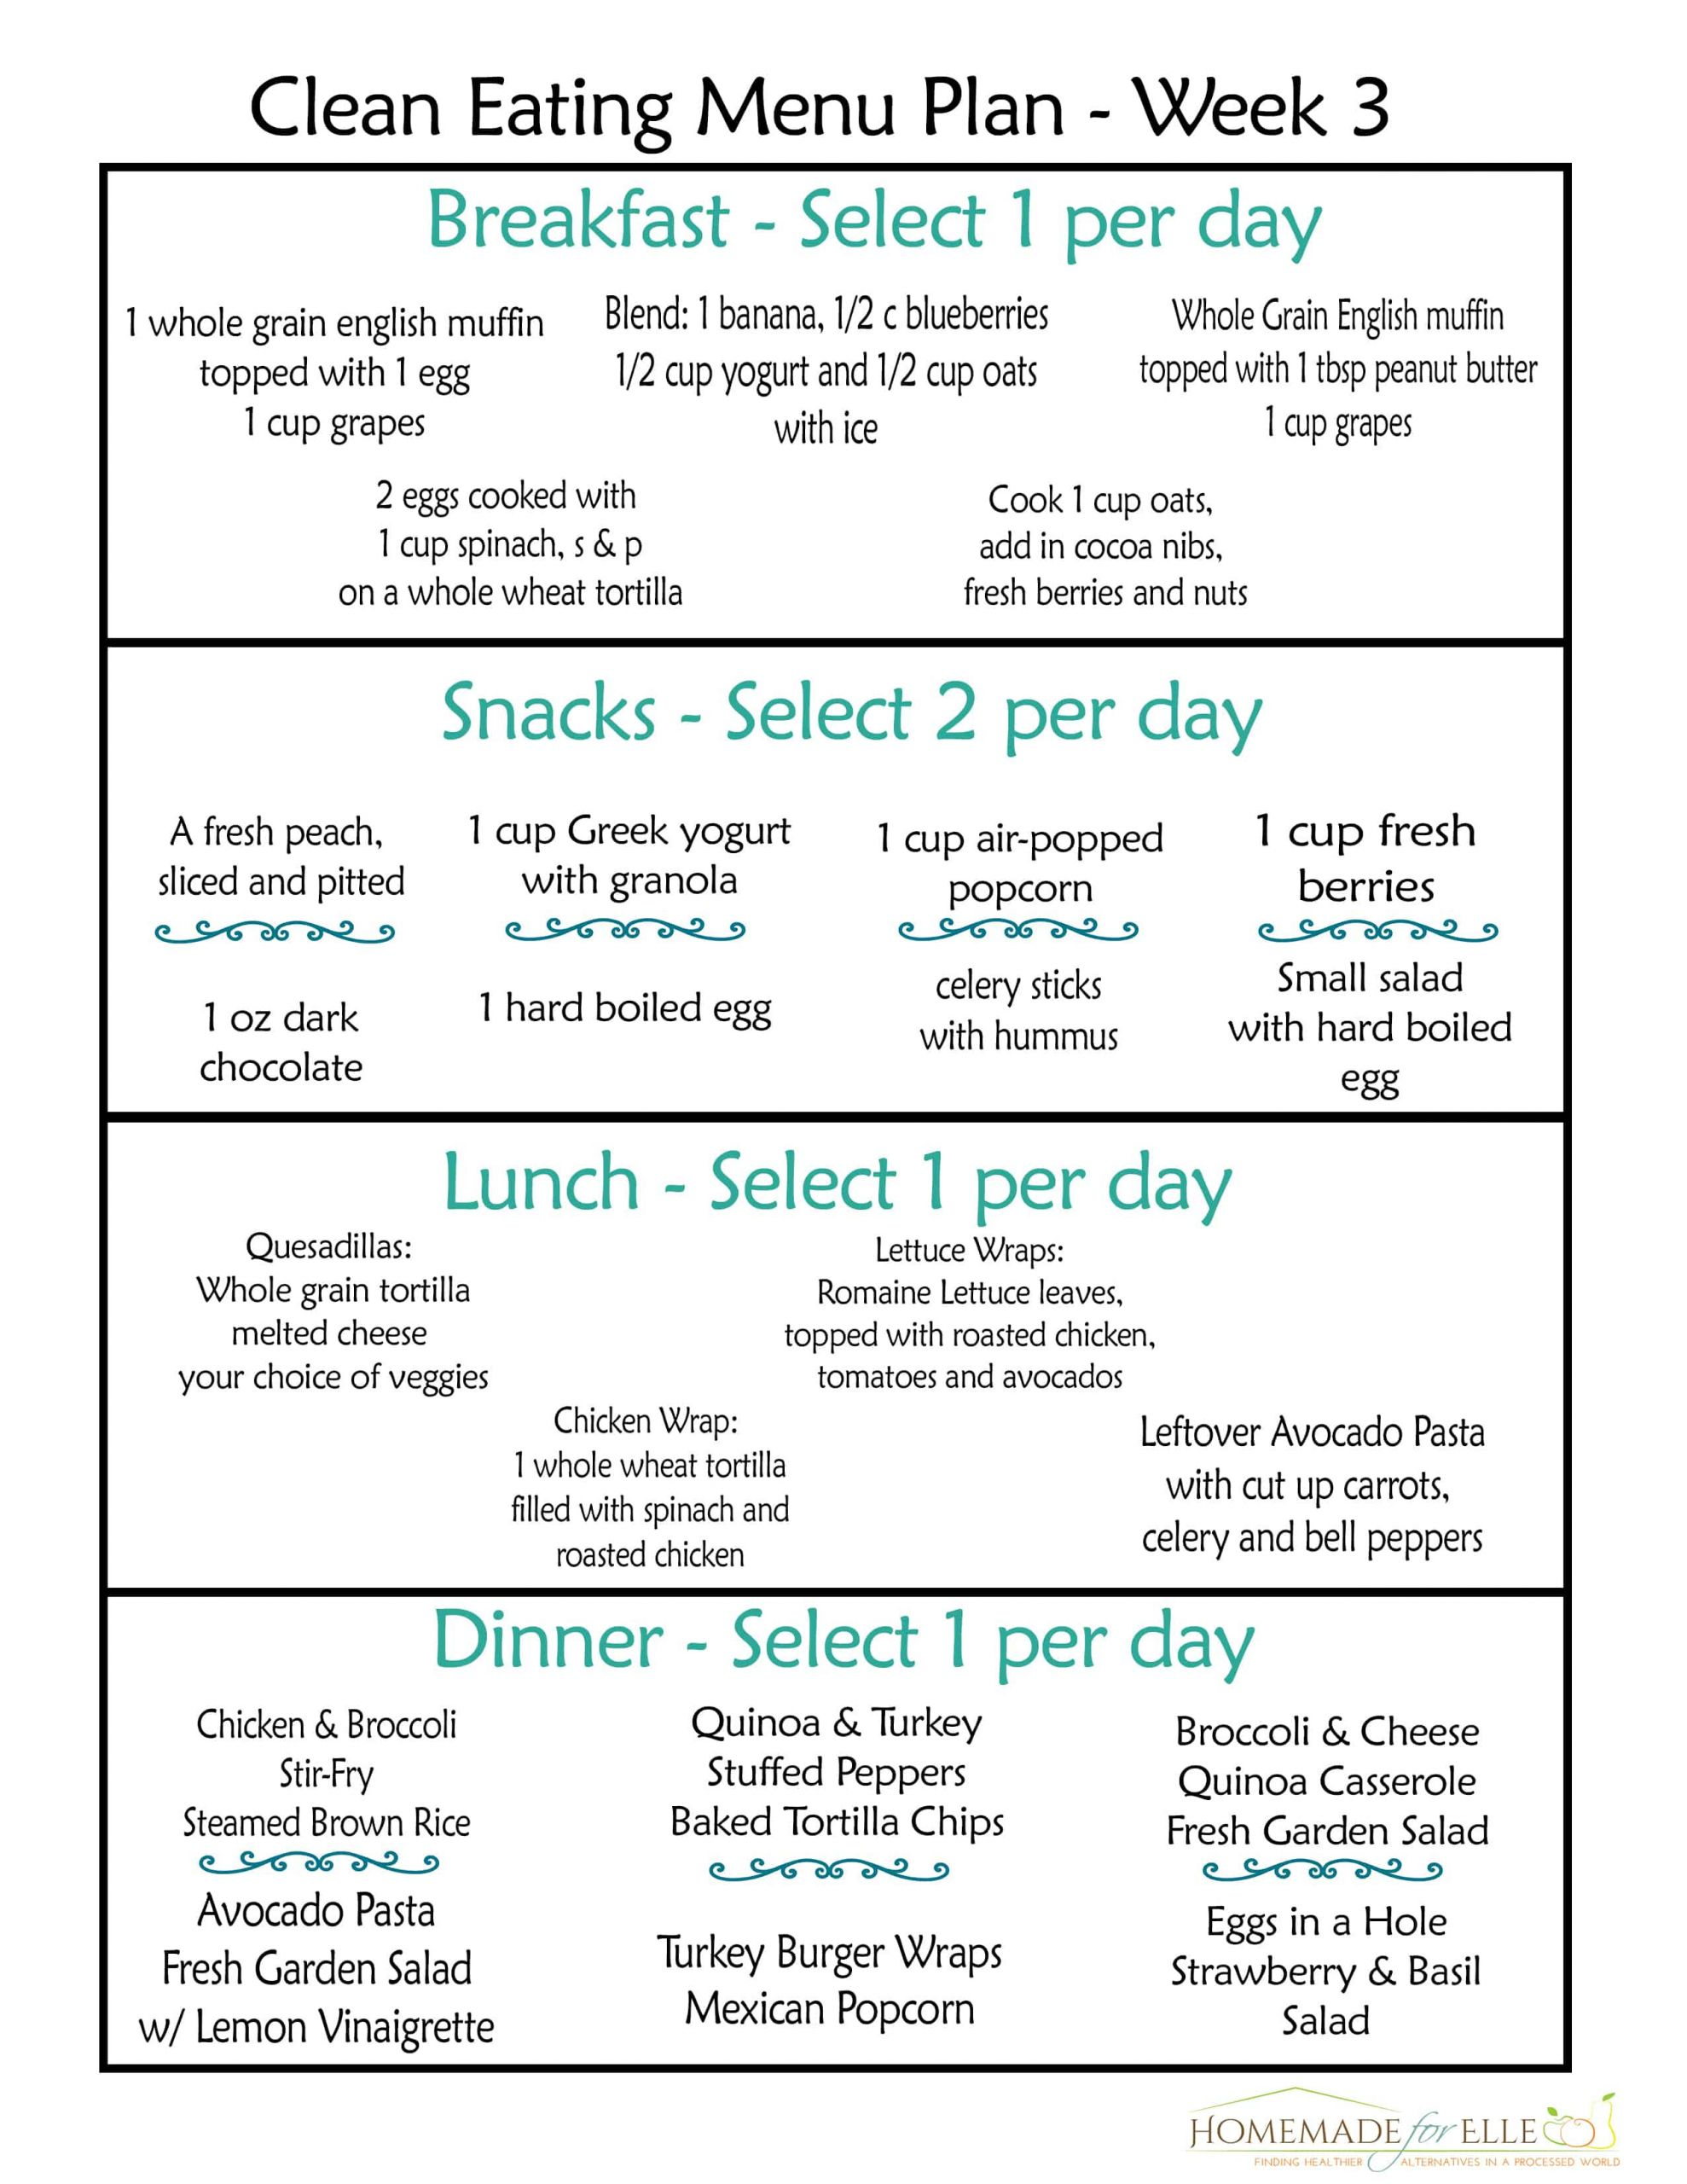 Clean Eating Meal Plans On A Budget  Clean Eating Meal Plan PDF with recipes your family will